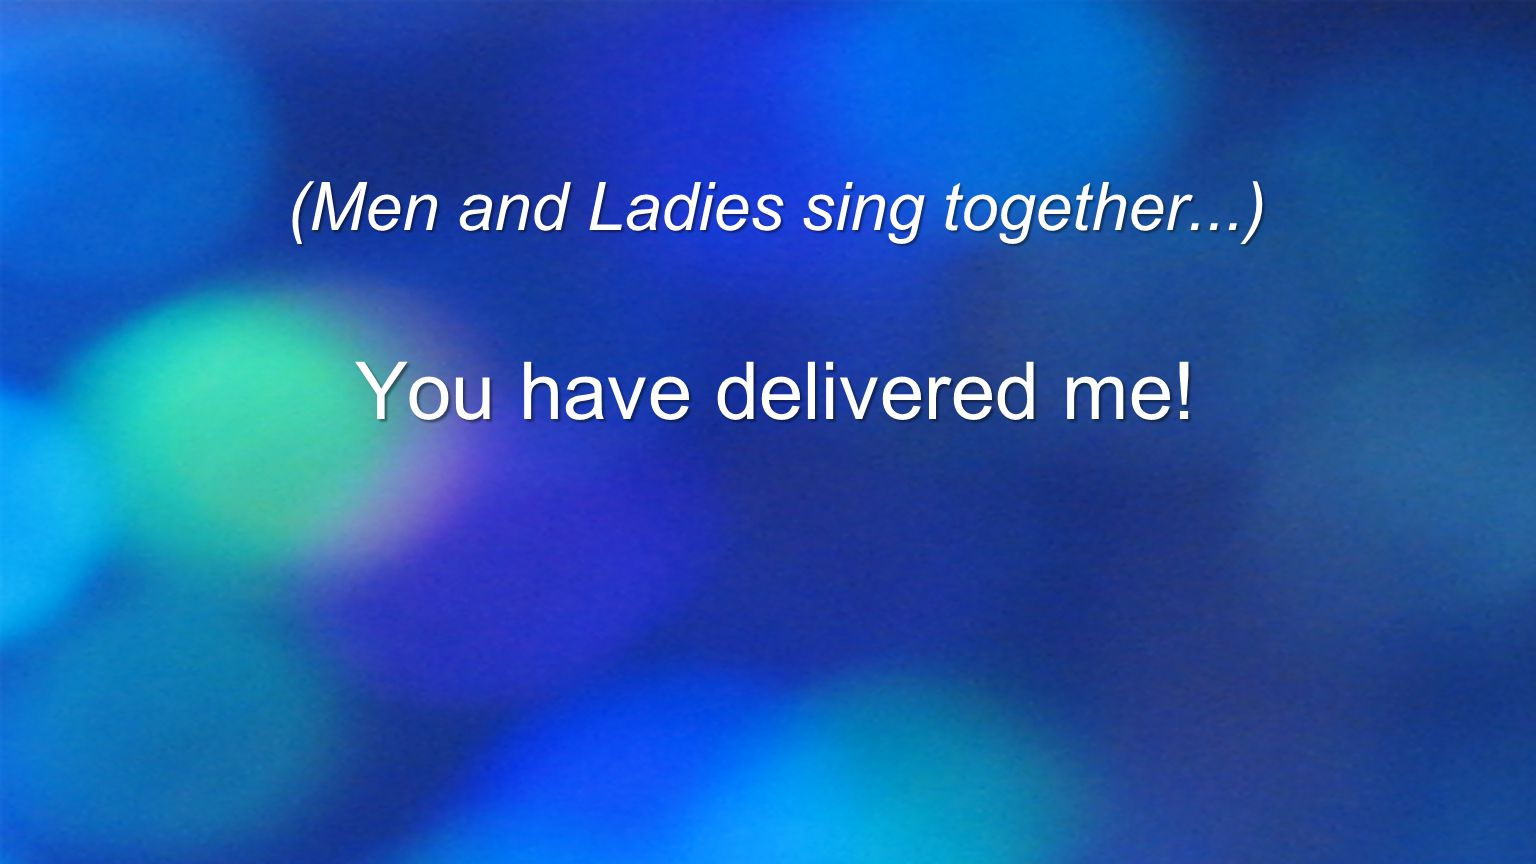 (Men and Ladies sing together...) You have delivered me!